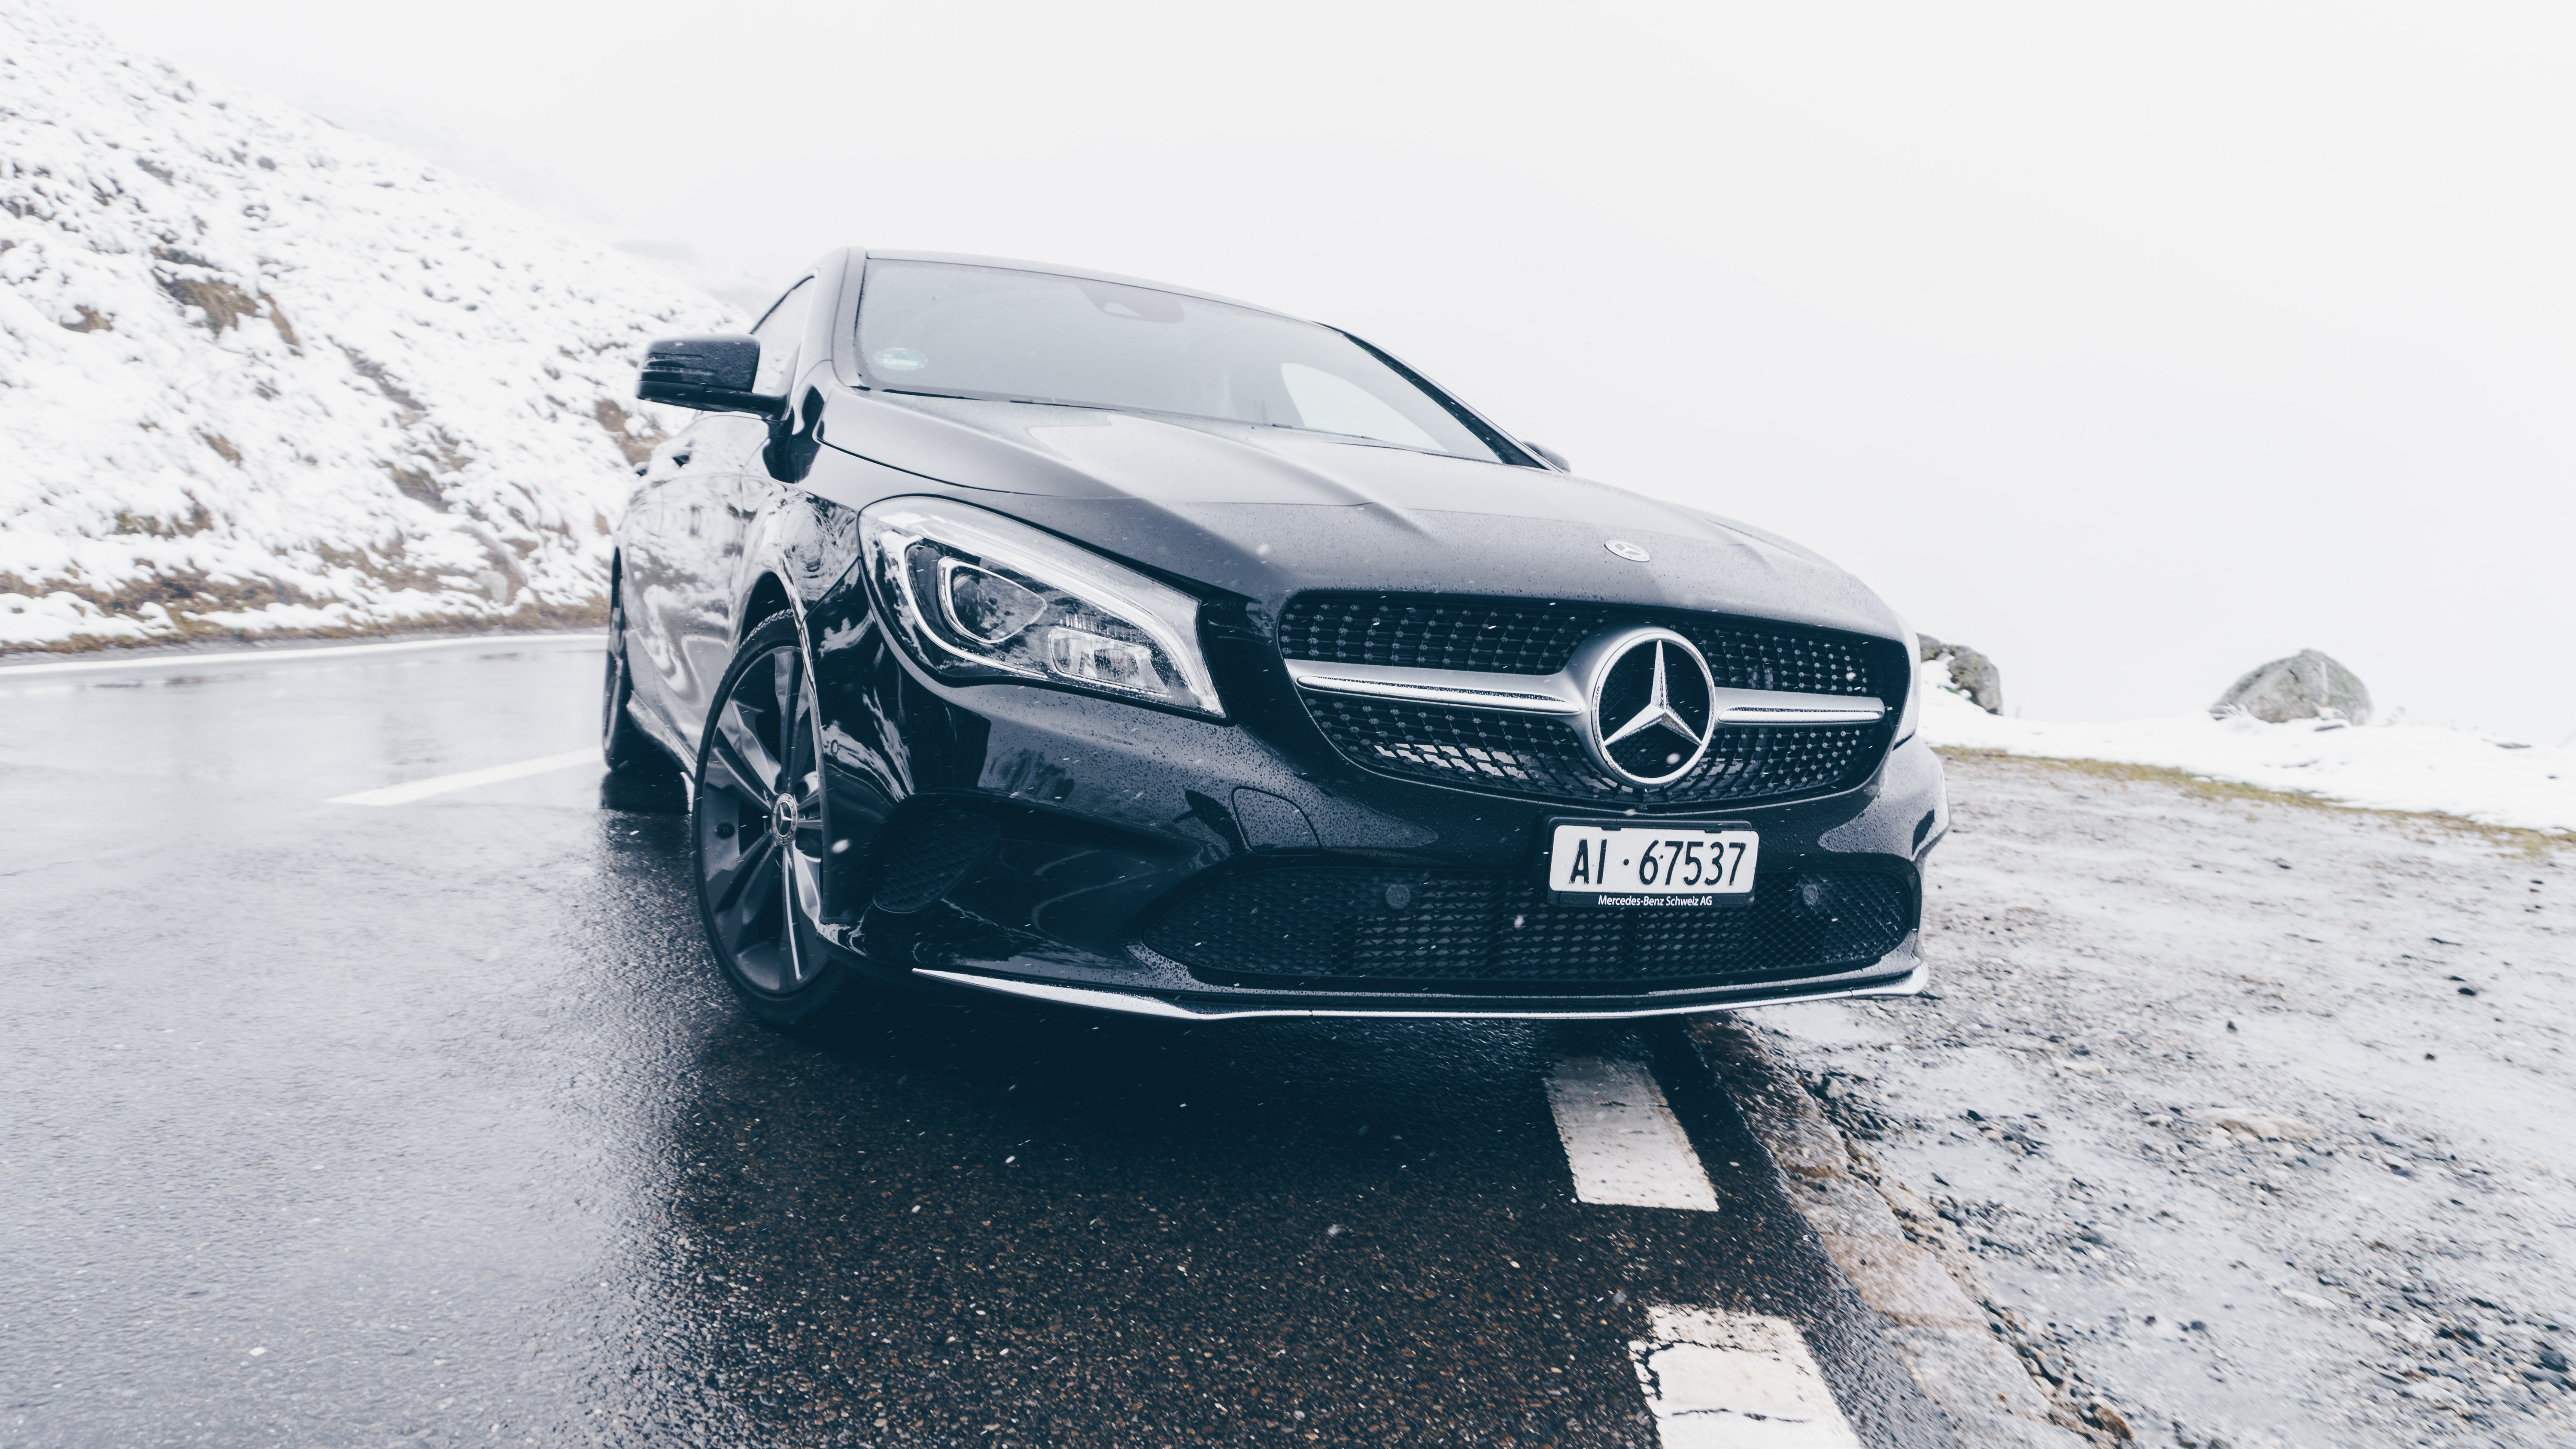 Black Mercedes Benz Car On Grey Concrete Surface